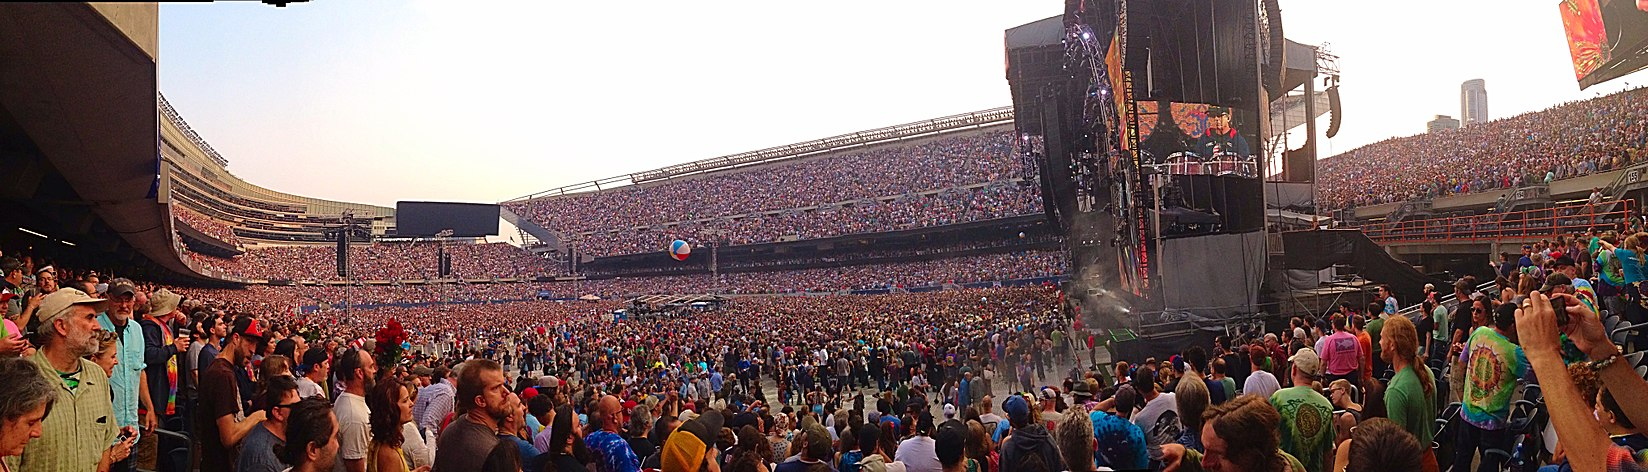 Fare Thee Well at Soldier Field, Chicago Grateful Dead - Fare Thee Well - Soldier Field - Chicago - 2015.jpg